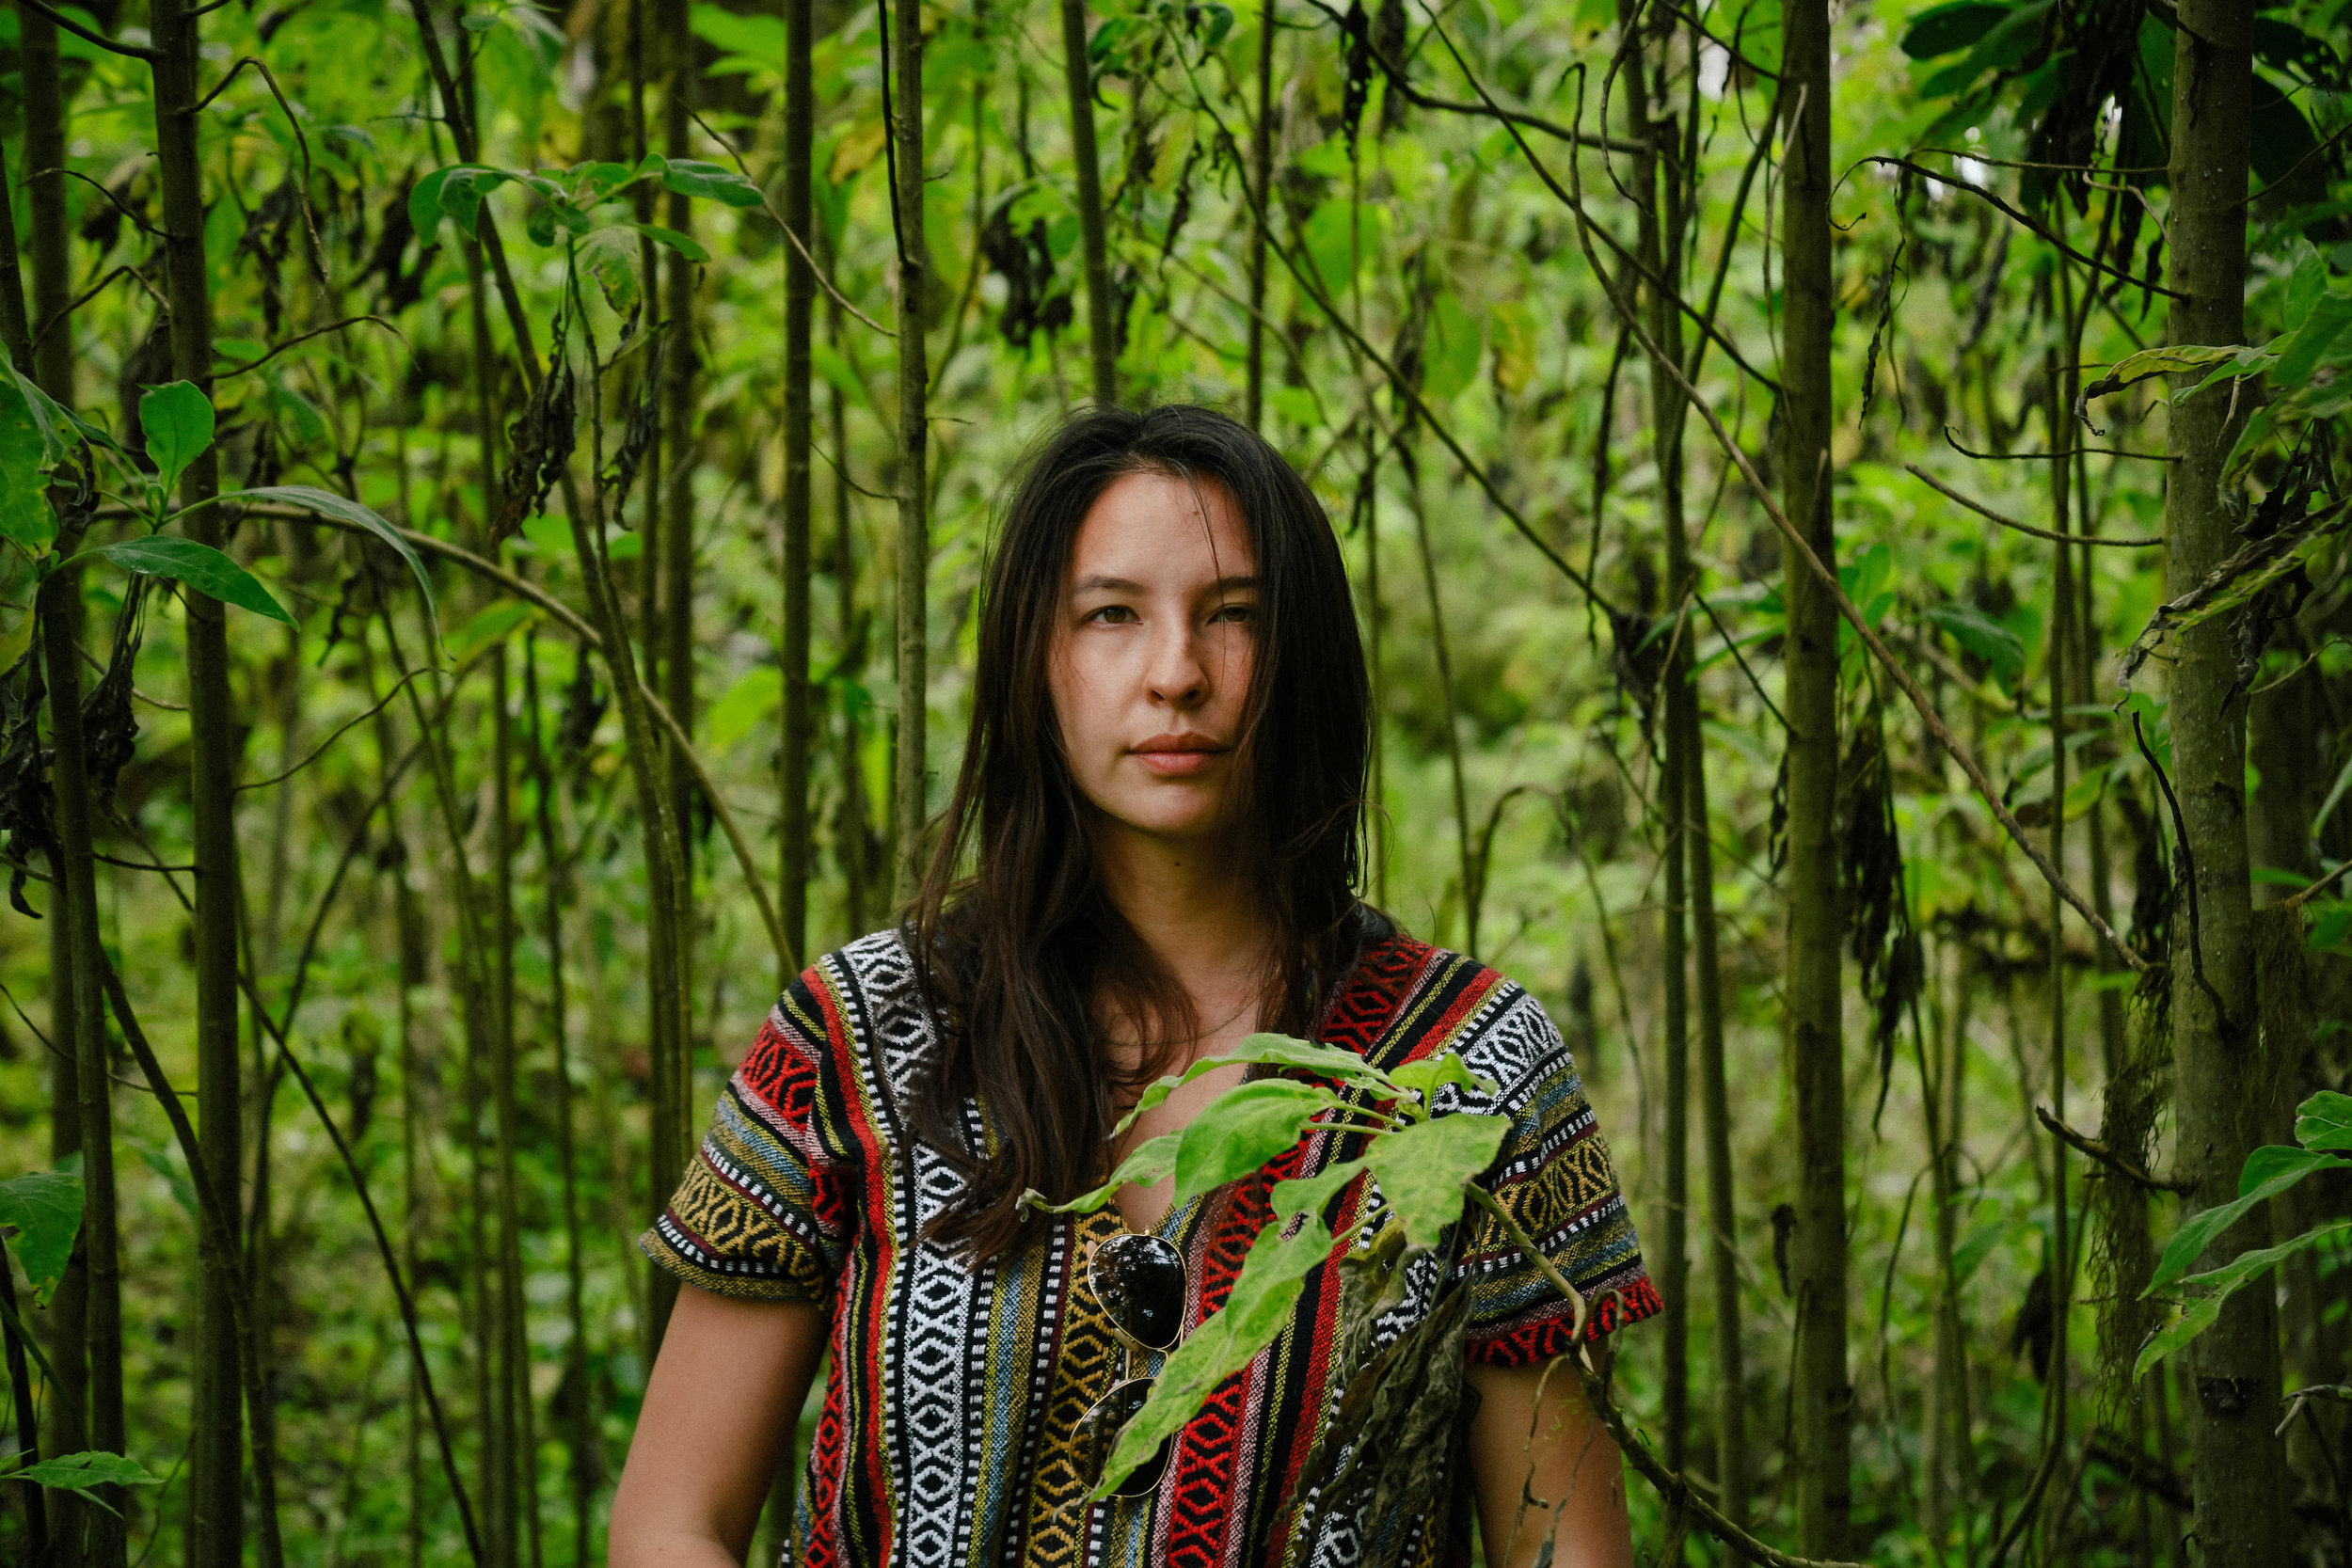 a portrait in bamboo in the galapagos islands